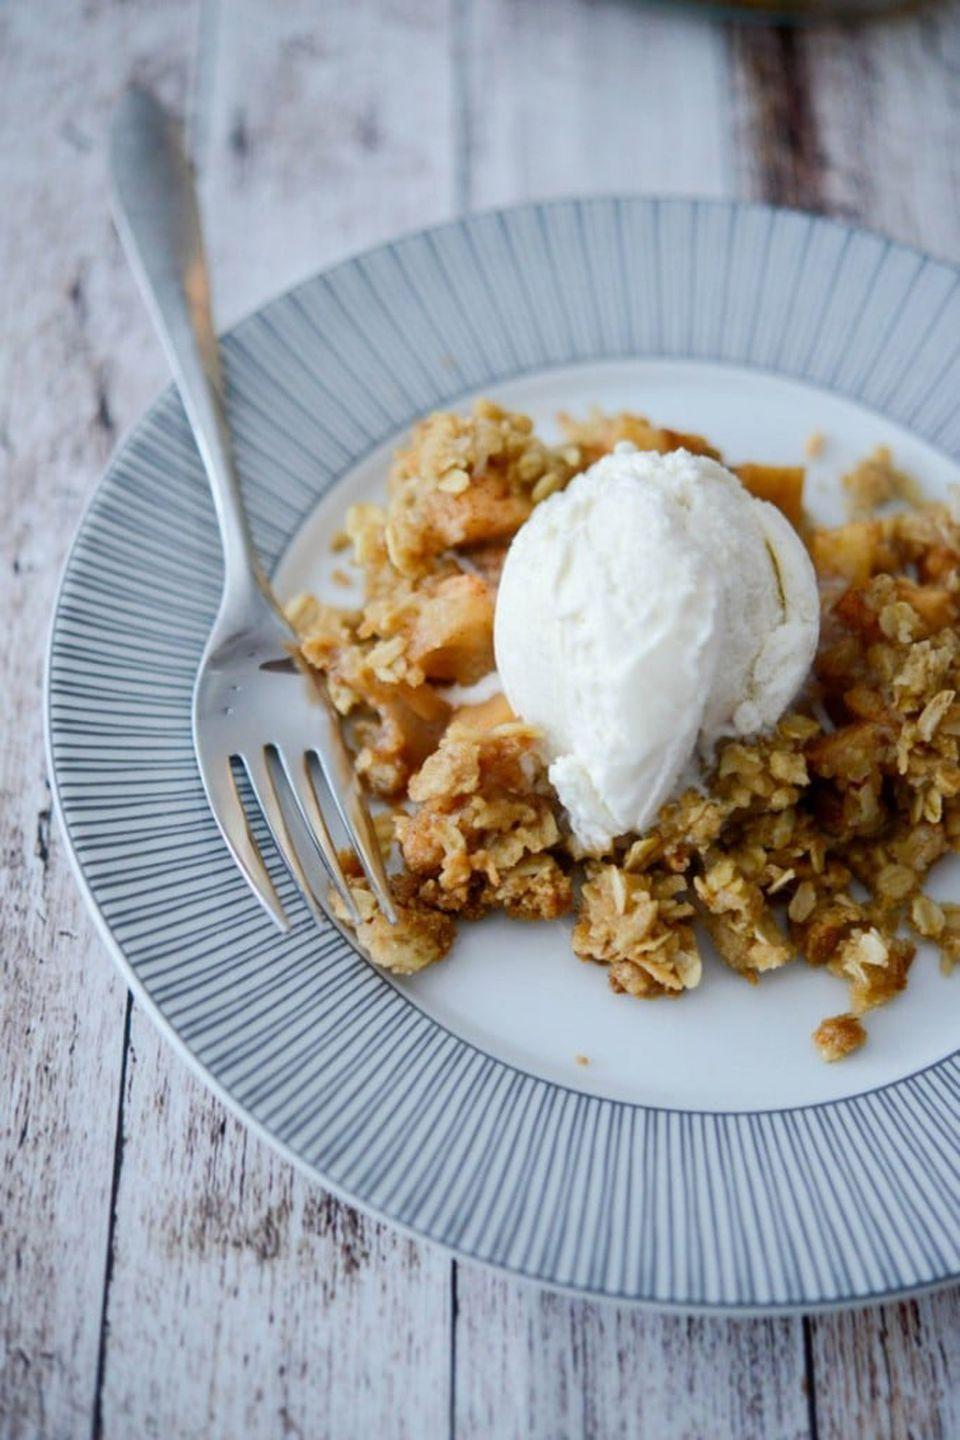 """<p>This spicy cobbler is finished with a coconut oat topping to add a nice crunch to every bite.</p><p><strong>Get the recipe at <a rel=""""nofollow noopener"""" href=""""https://www.carriesexperimentalkitchen.com/apple-chai-cobbler/"""" target=""""_blank"""" data-ylk=""""slk:Carrie's Experimental Kitchen"""" class=""""link rapid-noclick-resp"""">Carrie's Experimental Kitchen</a>.</strong><br></p><p><a rel=""""nofollow noopener"""" href=""""https://www.amazon.com/Pyrex-Prepware-3-Piece-Glass-Mixing/dp/B00LGLHUA0"""" target=""""_blank"""" data-ylk=""""slk:SHOP MIXING BOWLS"""" class=""""link rapid-noclick-resp"""">SHOP MIXING BOWLS</a></p>"""